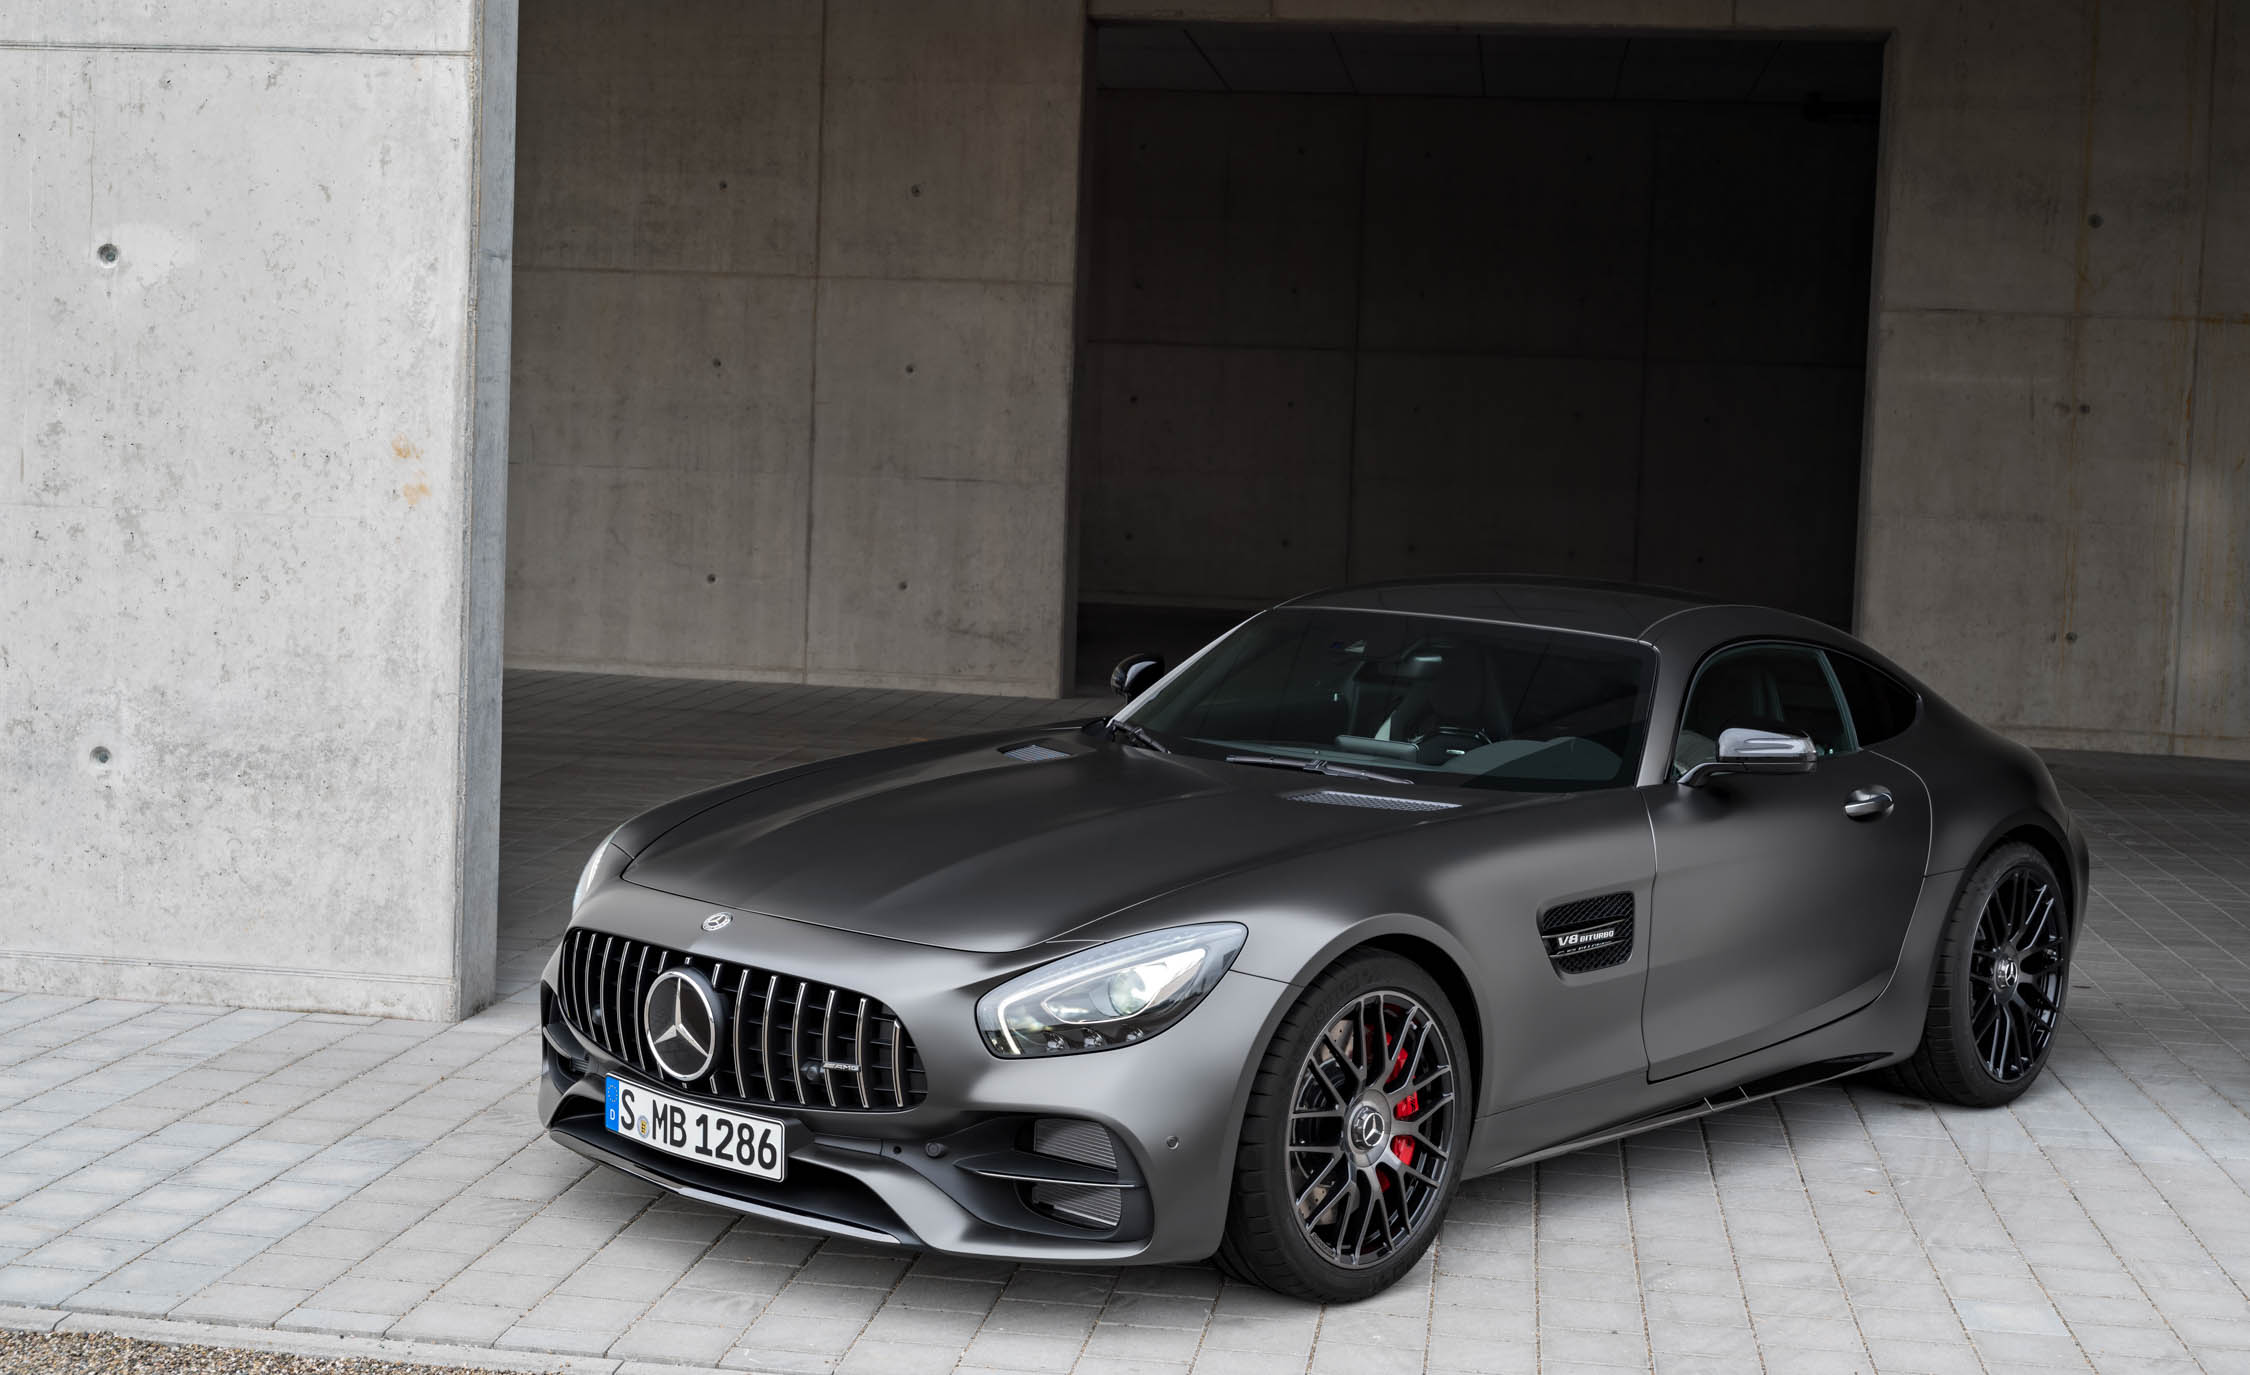 2018 Mercedes Amg Gt C Exterior Front And Side (View 17 of 23)